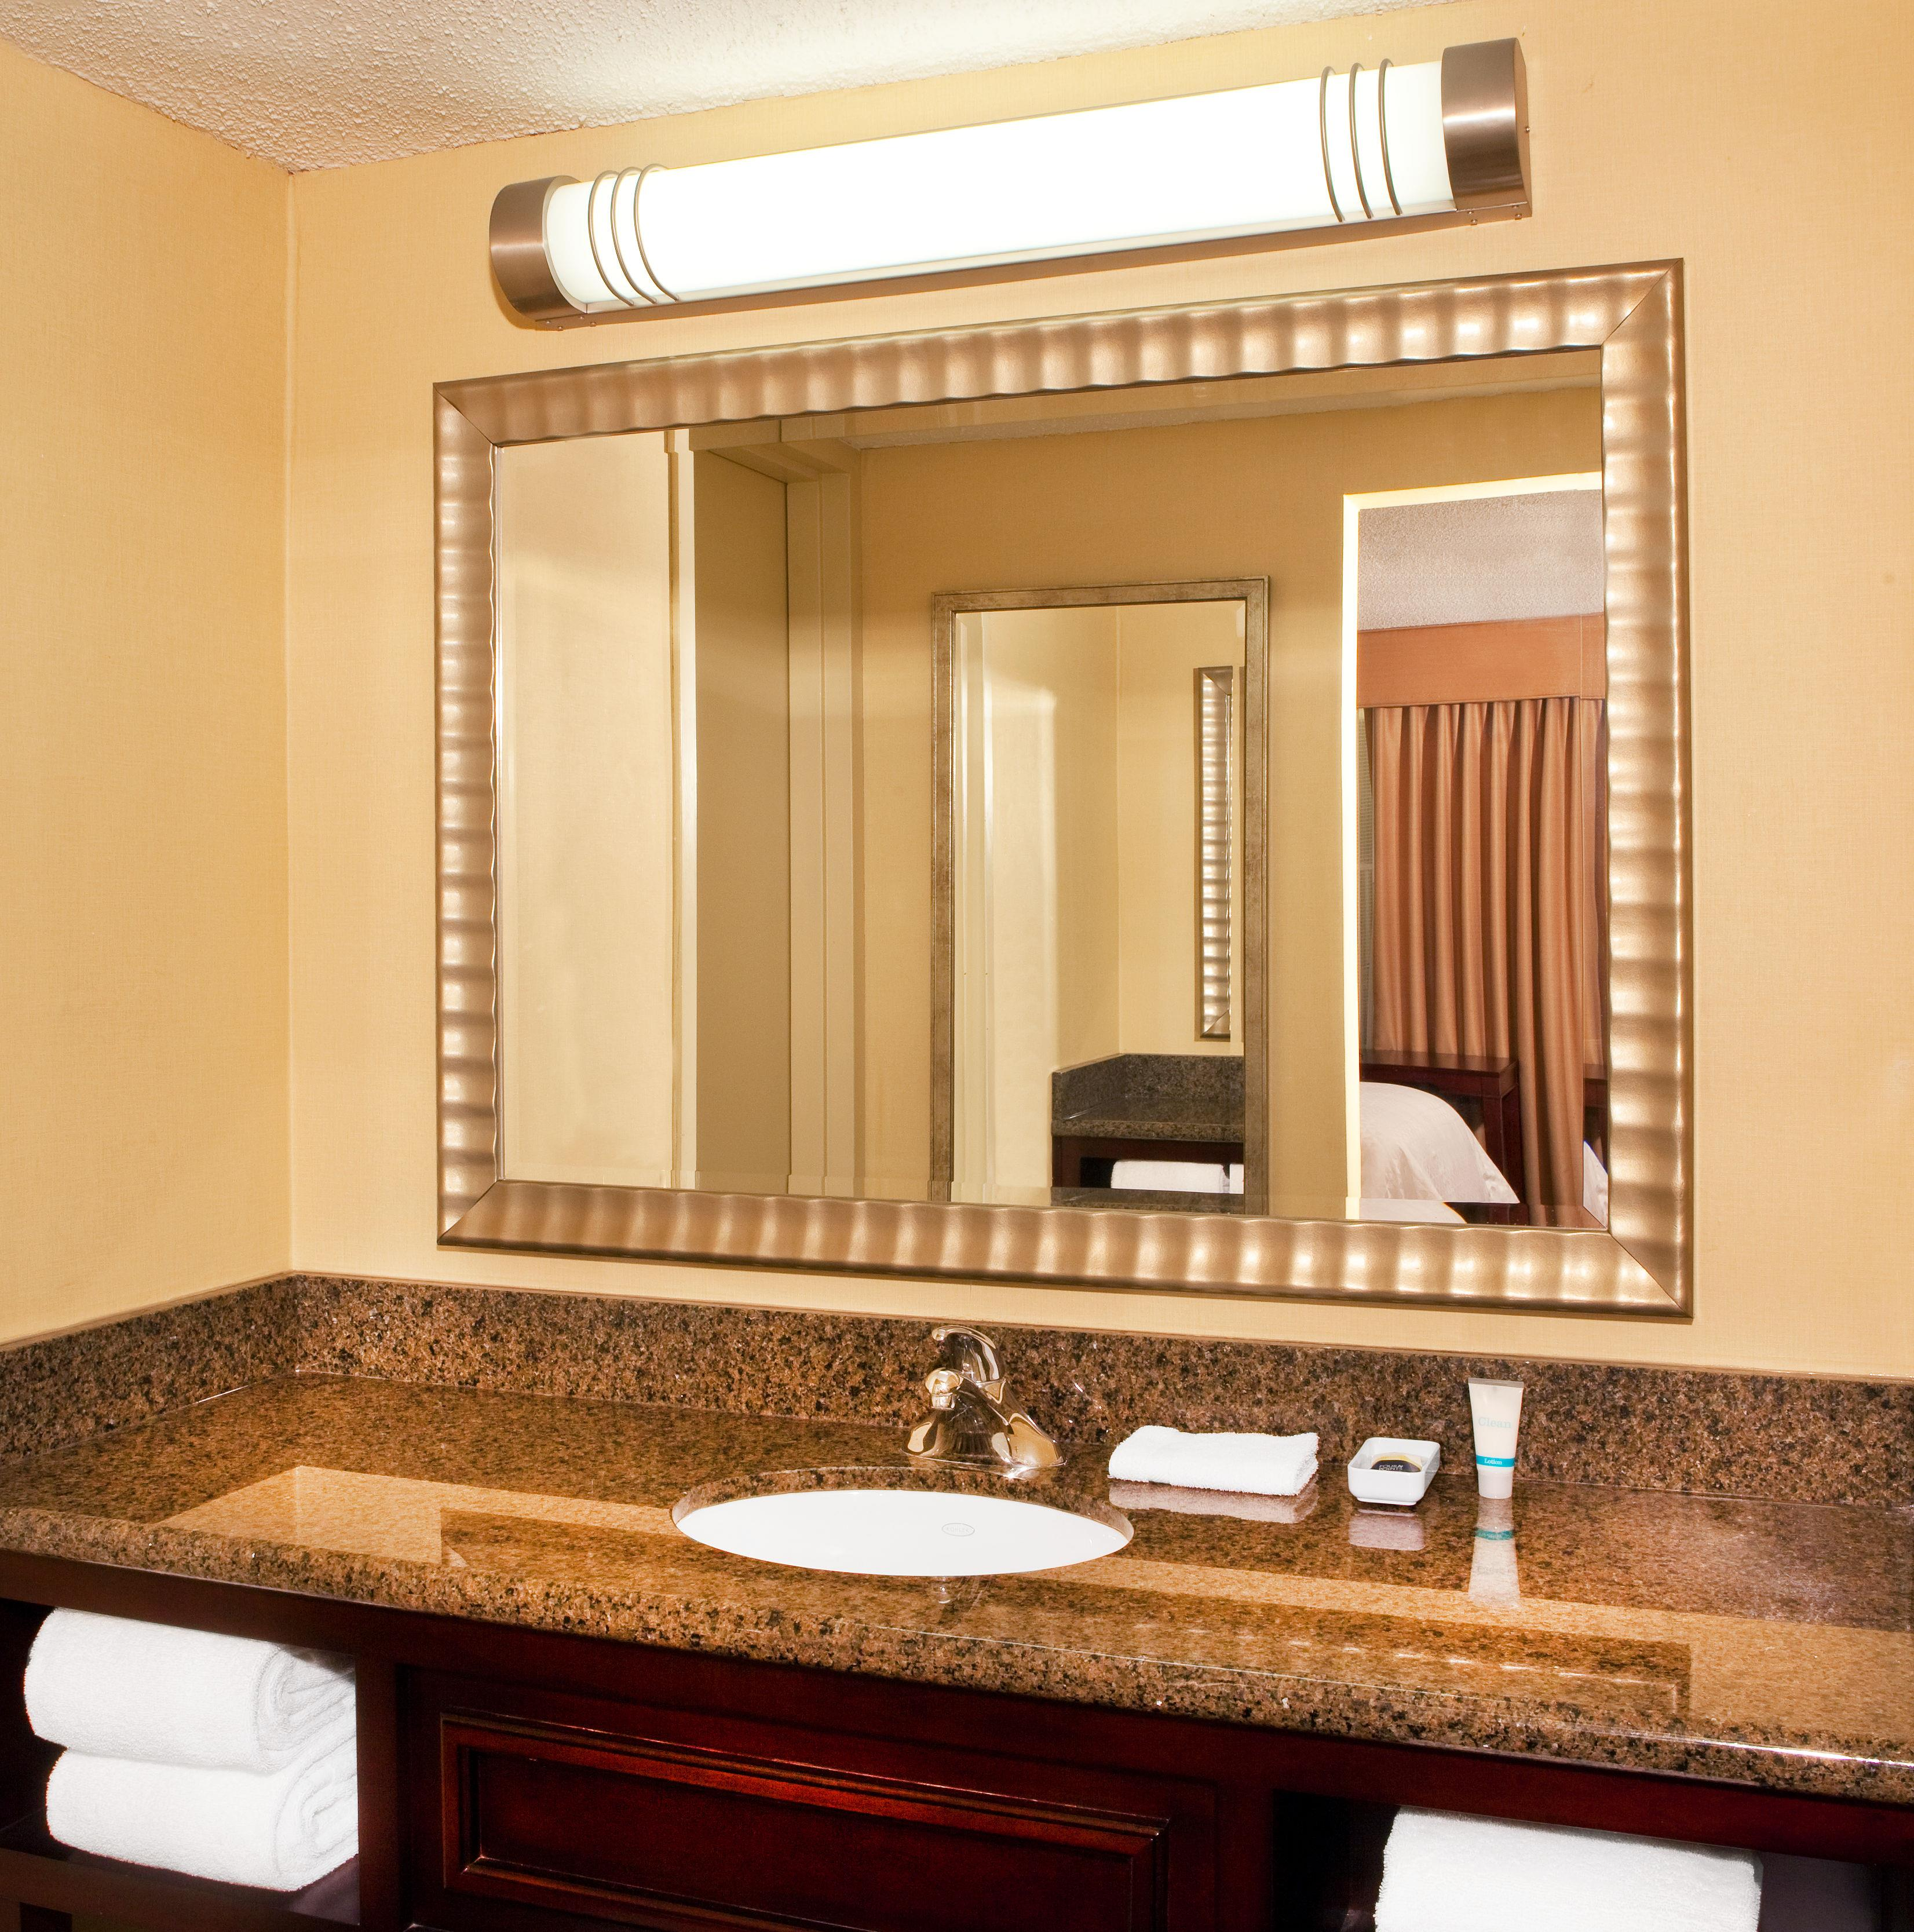 Four Points by Sheraton West Lafayette image 7